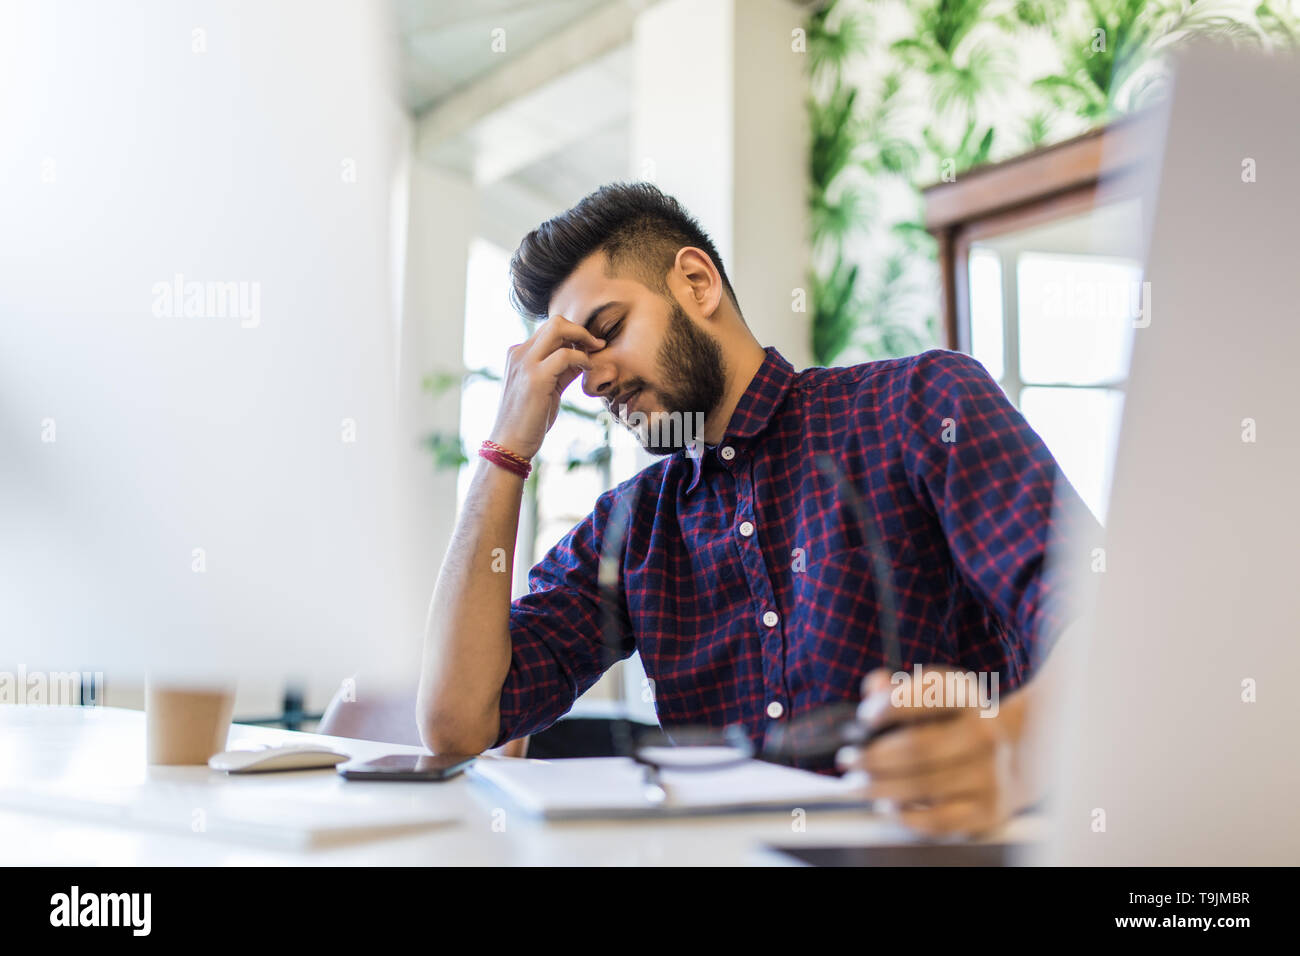 Photo of an Indian male frustrated with work sitting in front of a laptop. - Stock Image